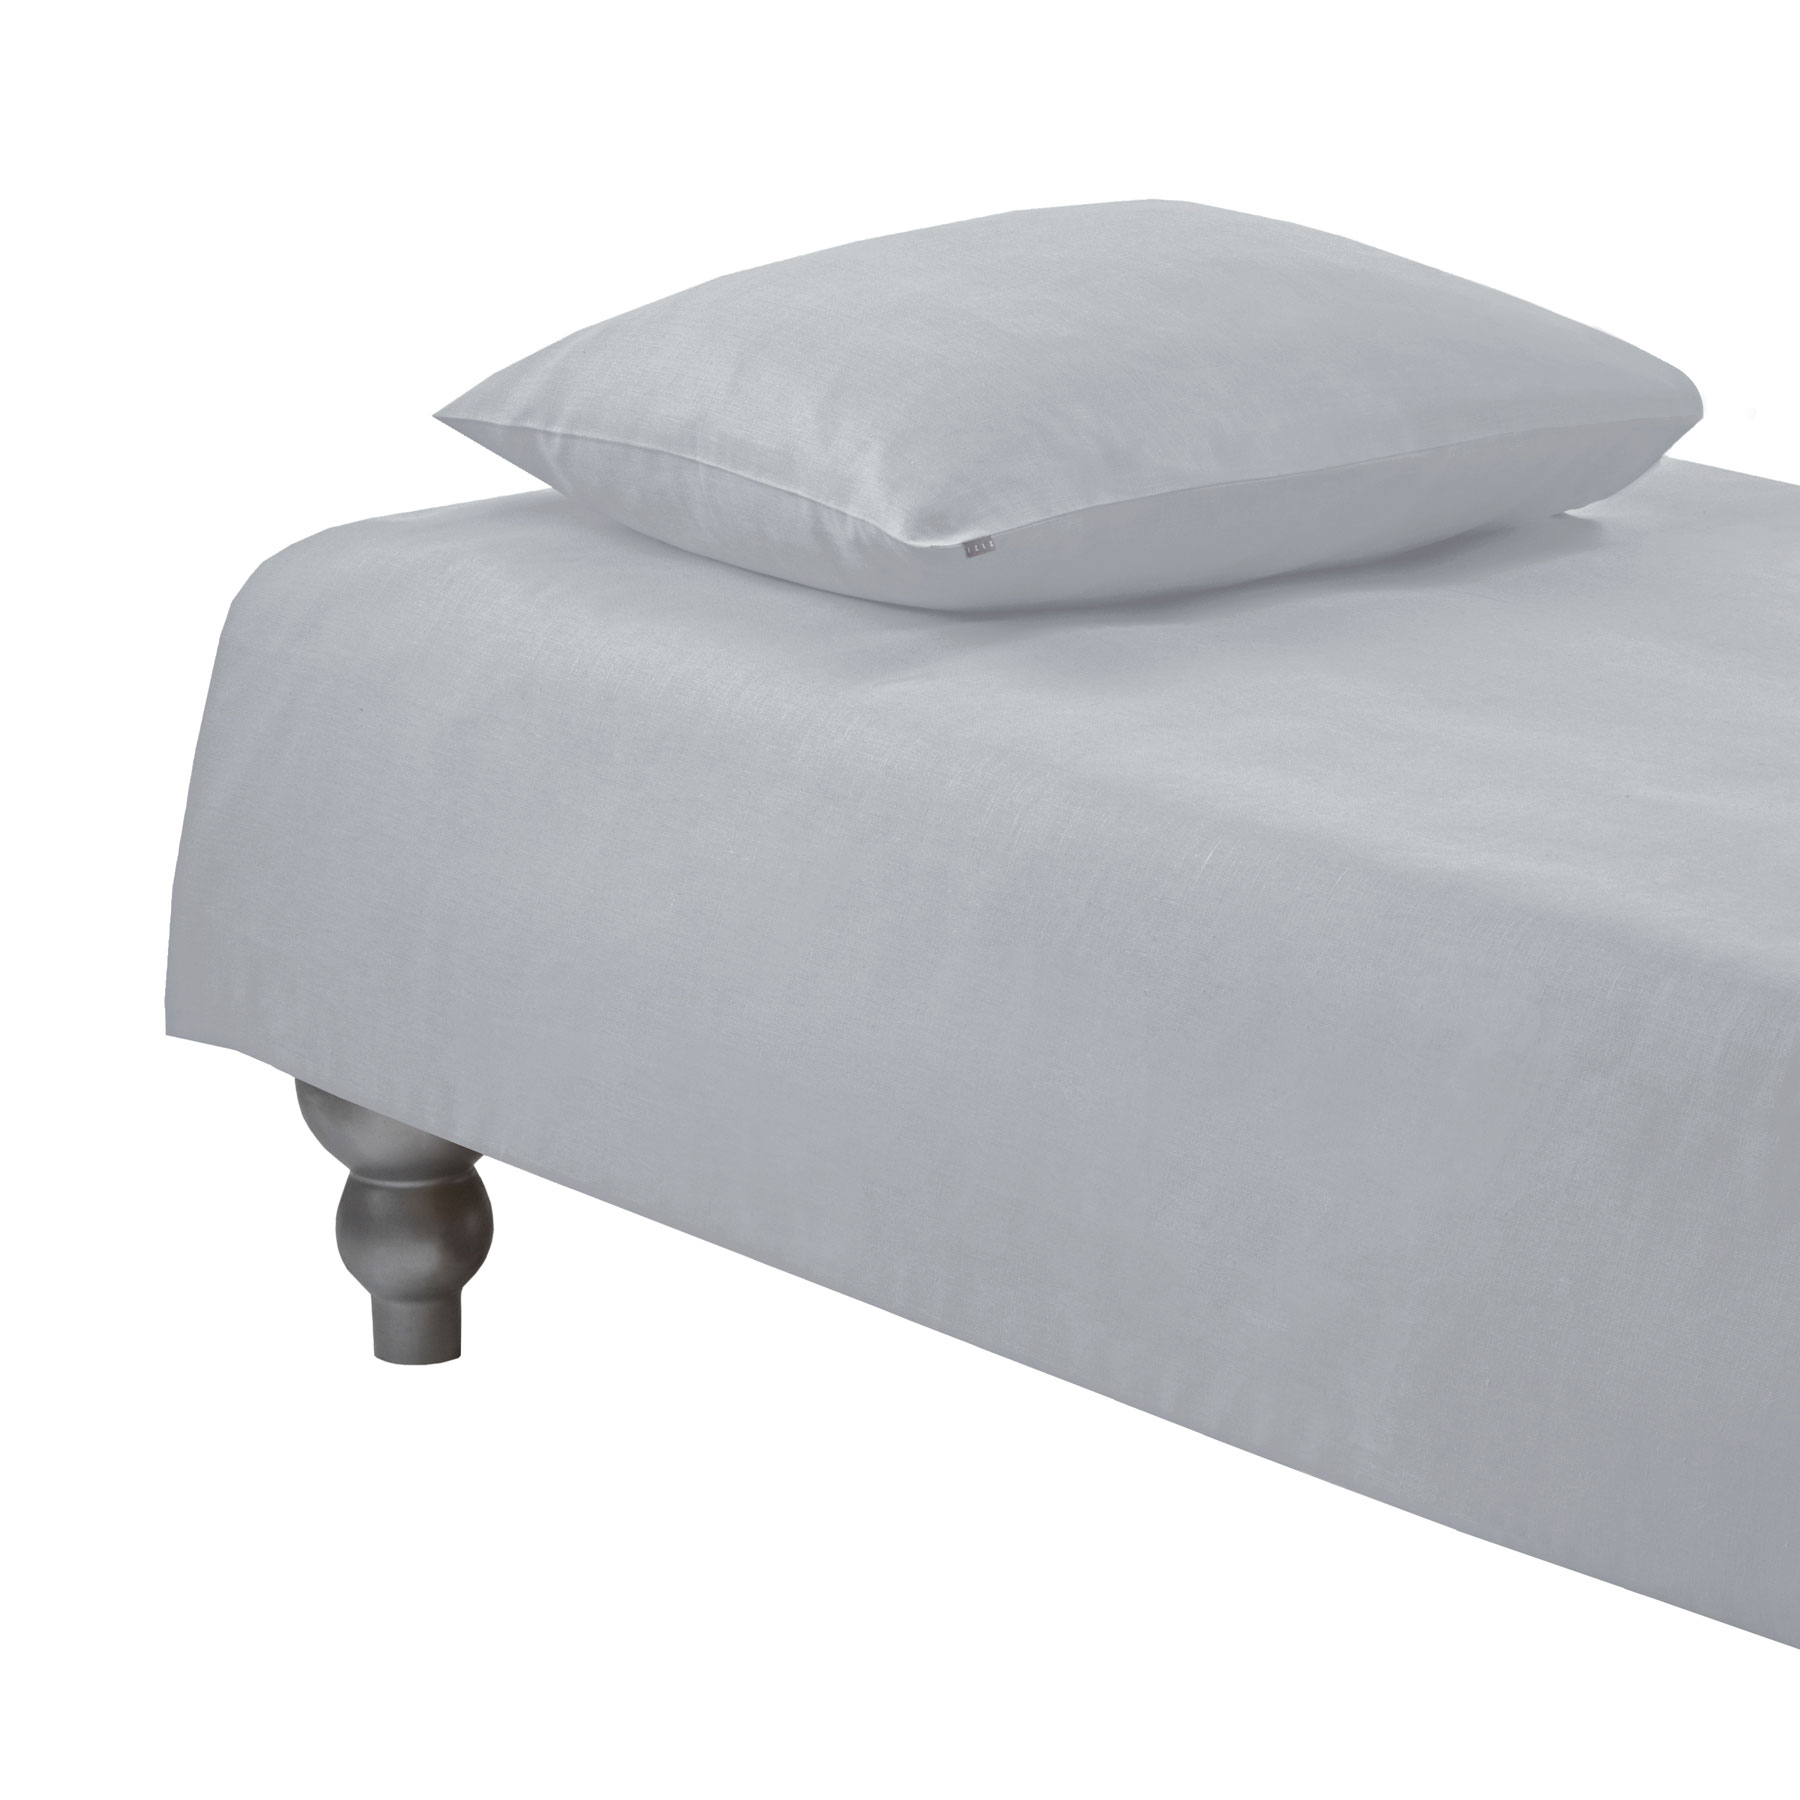 DUVET COVER PLAIN <br />light gray